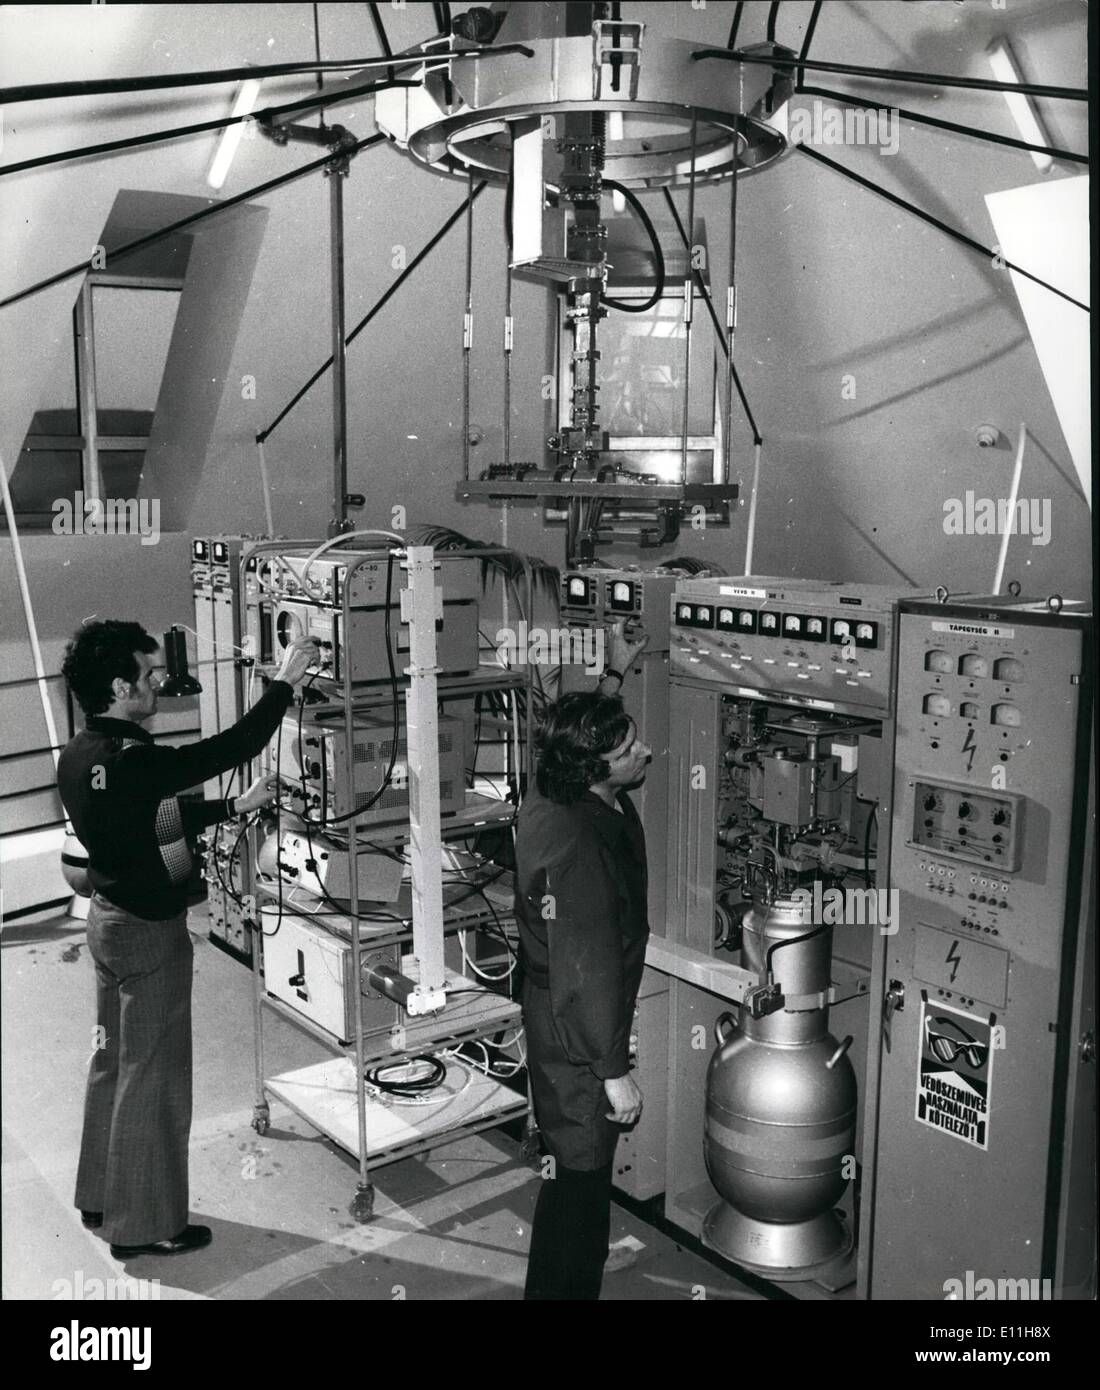 Jan 01 1978 Space Satellite Tracing And Telecommunication Electrical Wiring Station Commissioned In Hungary The Here Was